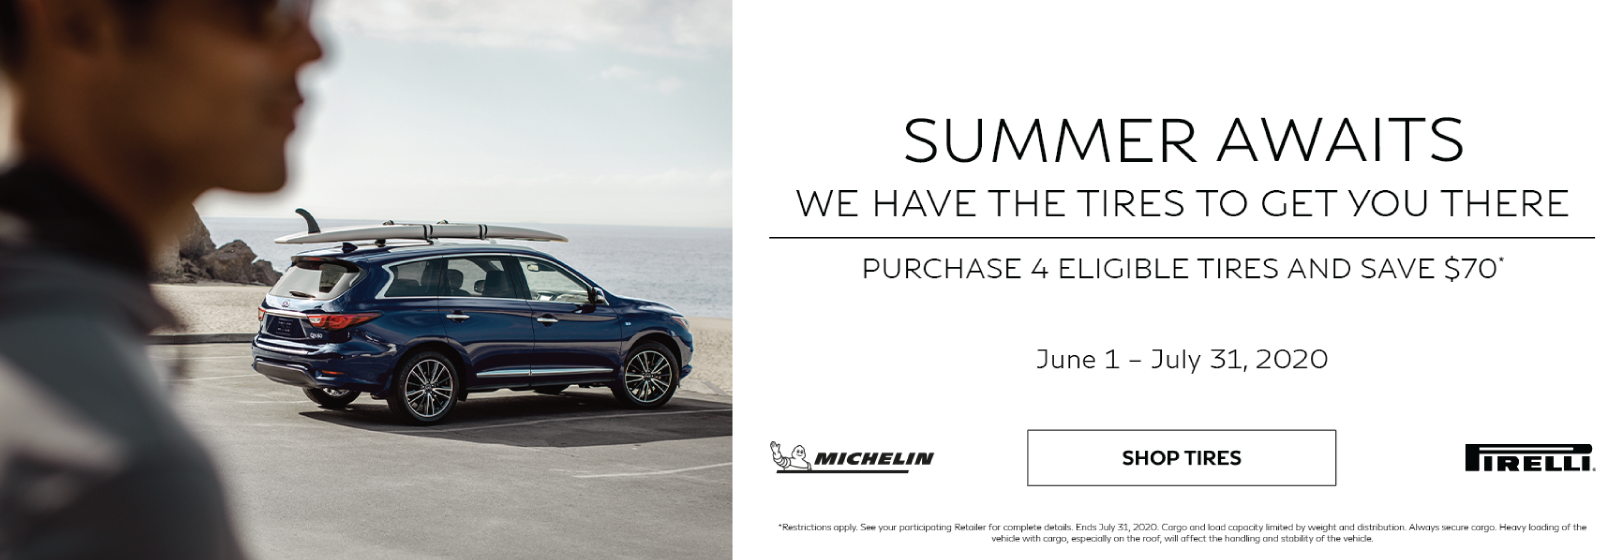 Purchase 4 eligible tires and save $70. See service advisor for details. Expires July 31, 2020